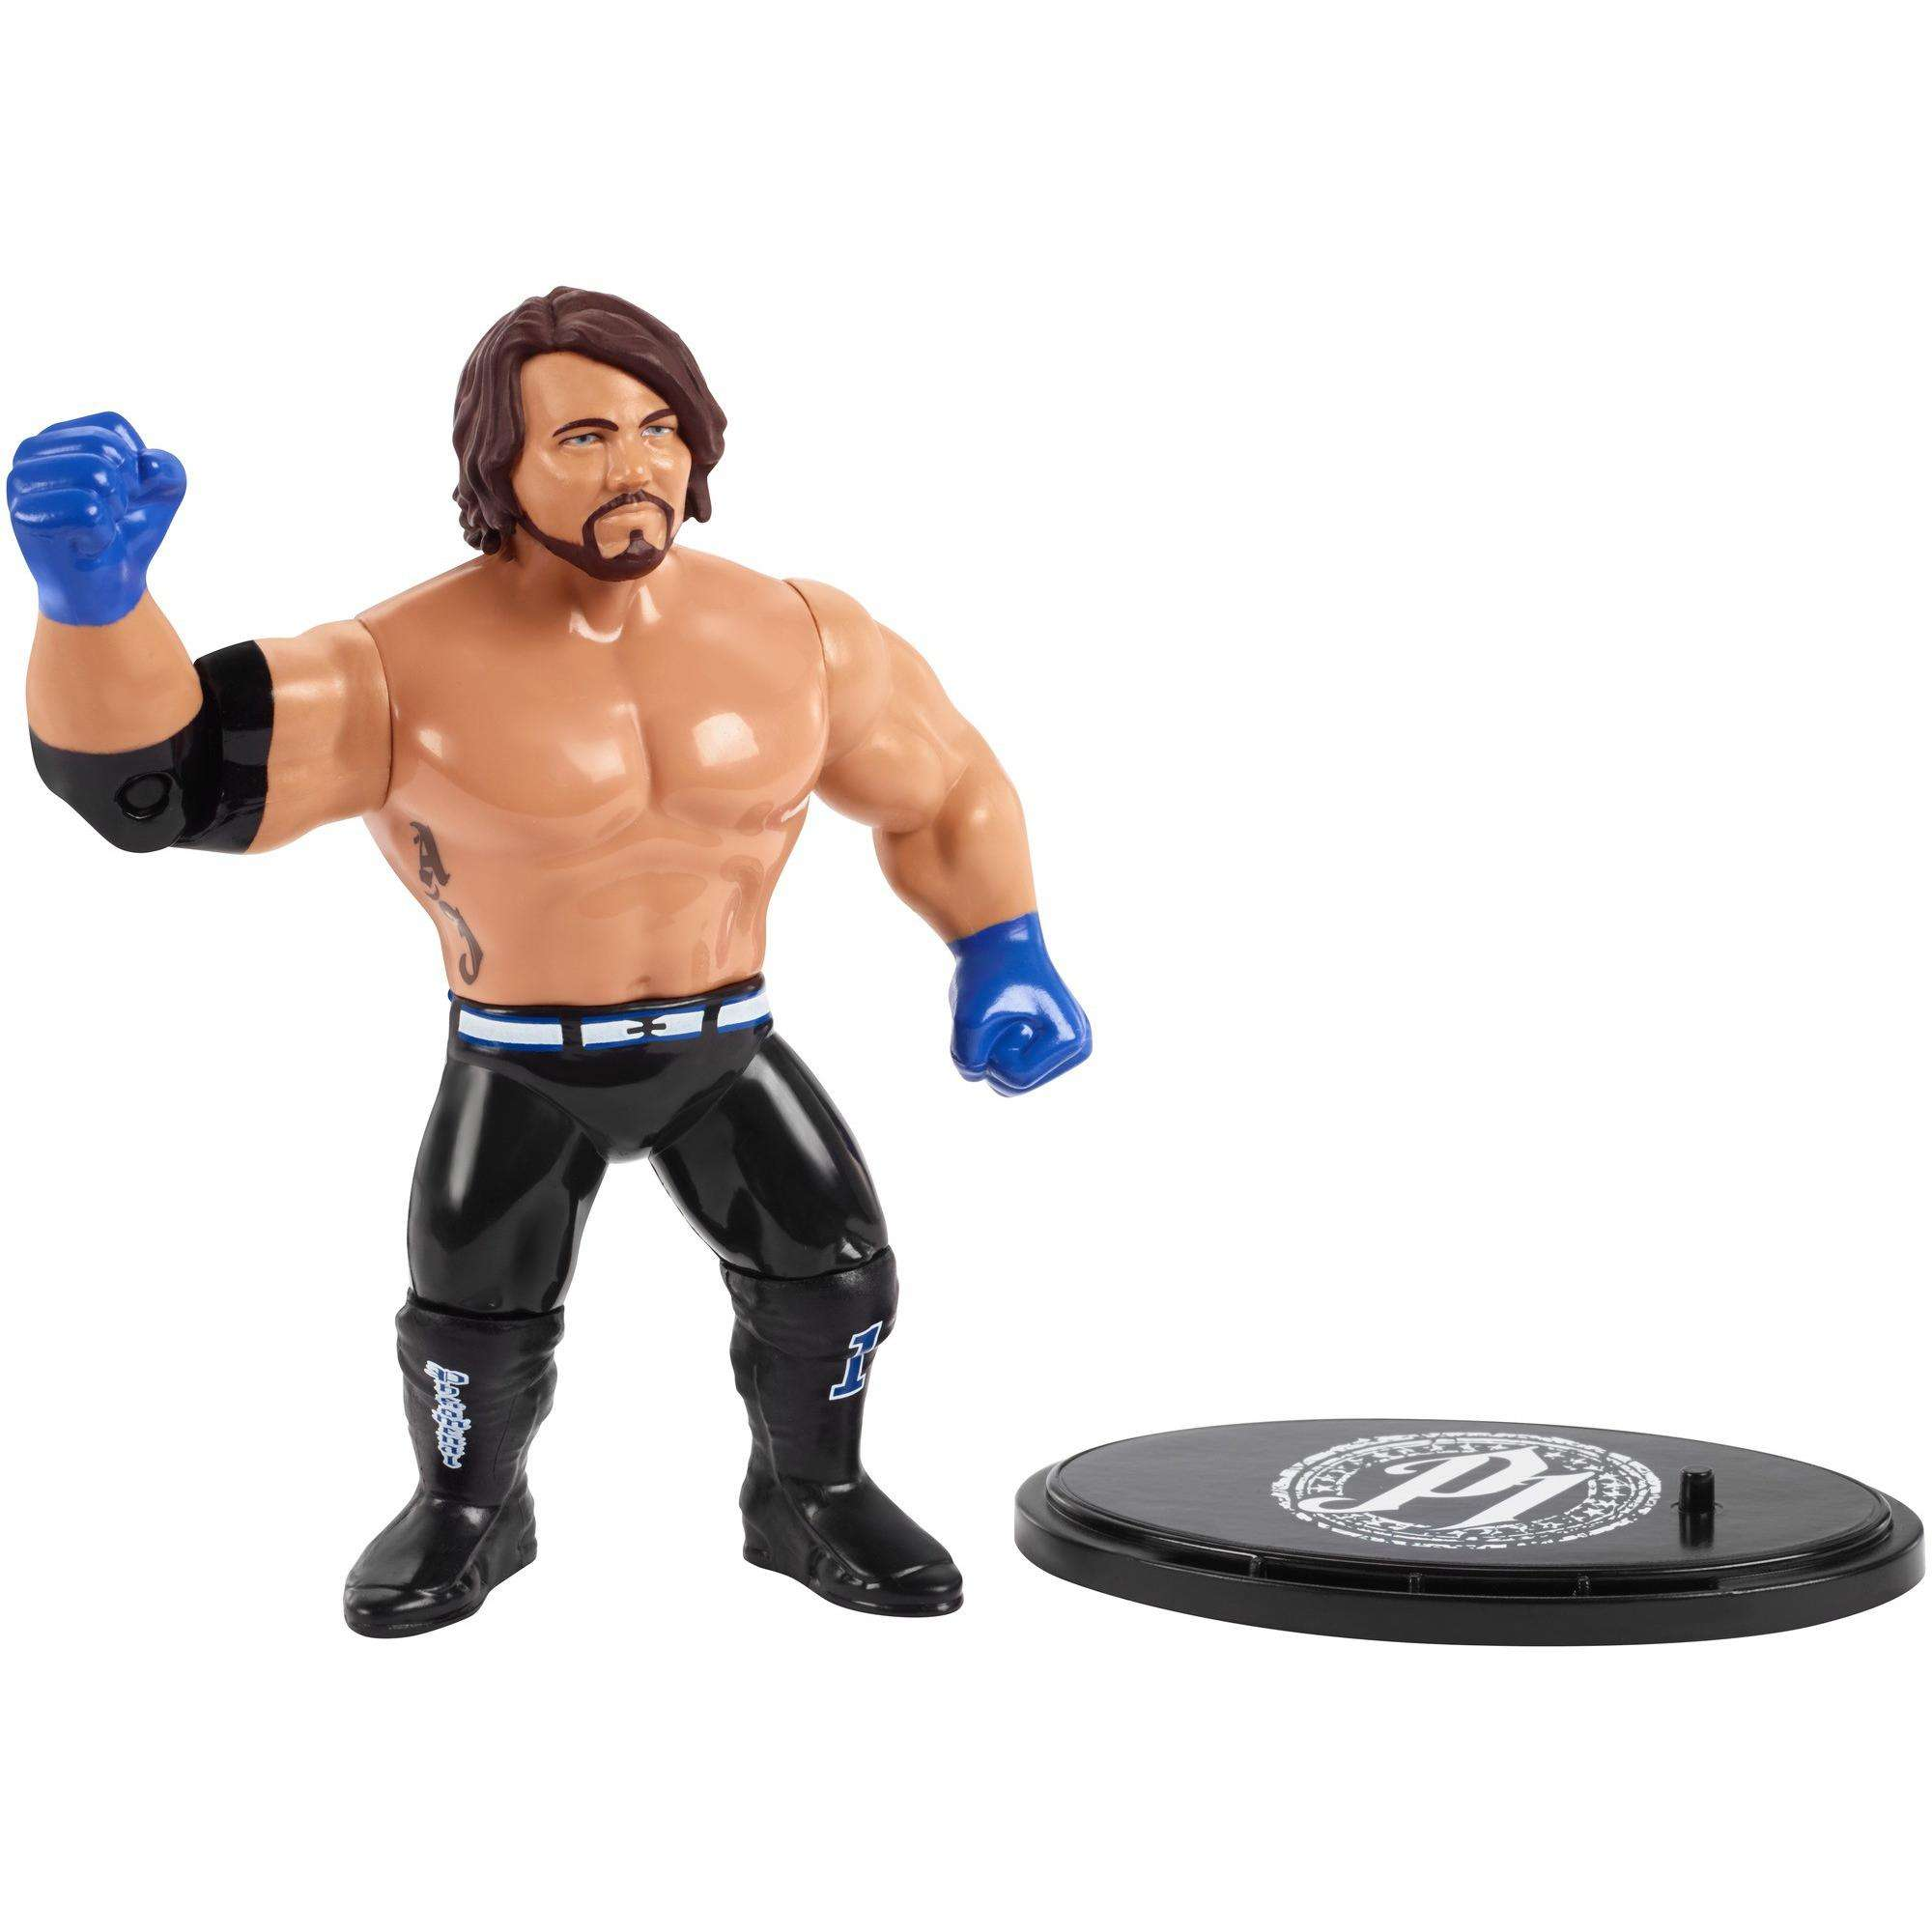 WWE Aj Styles Retro App Action Figure